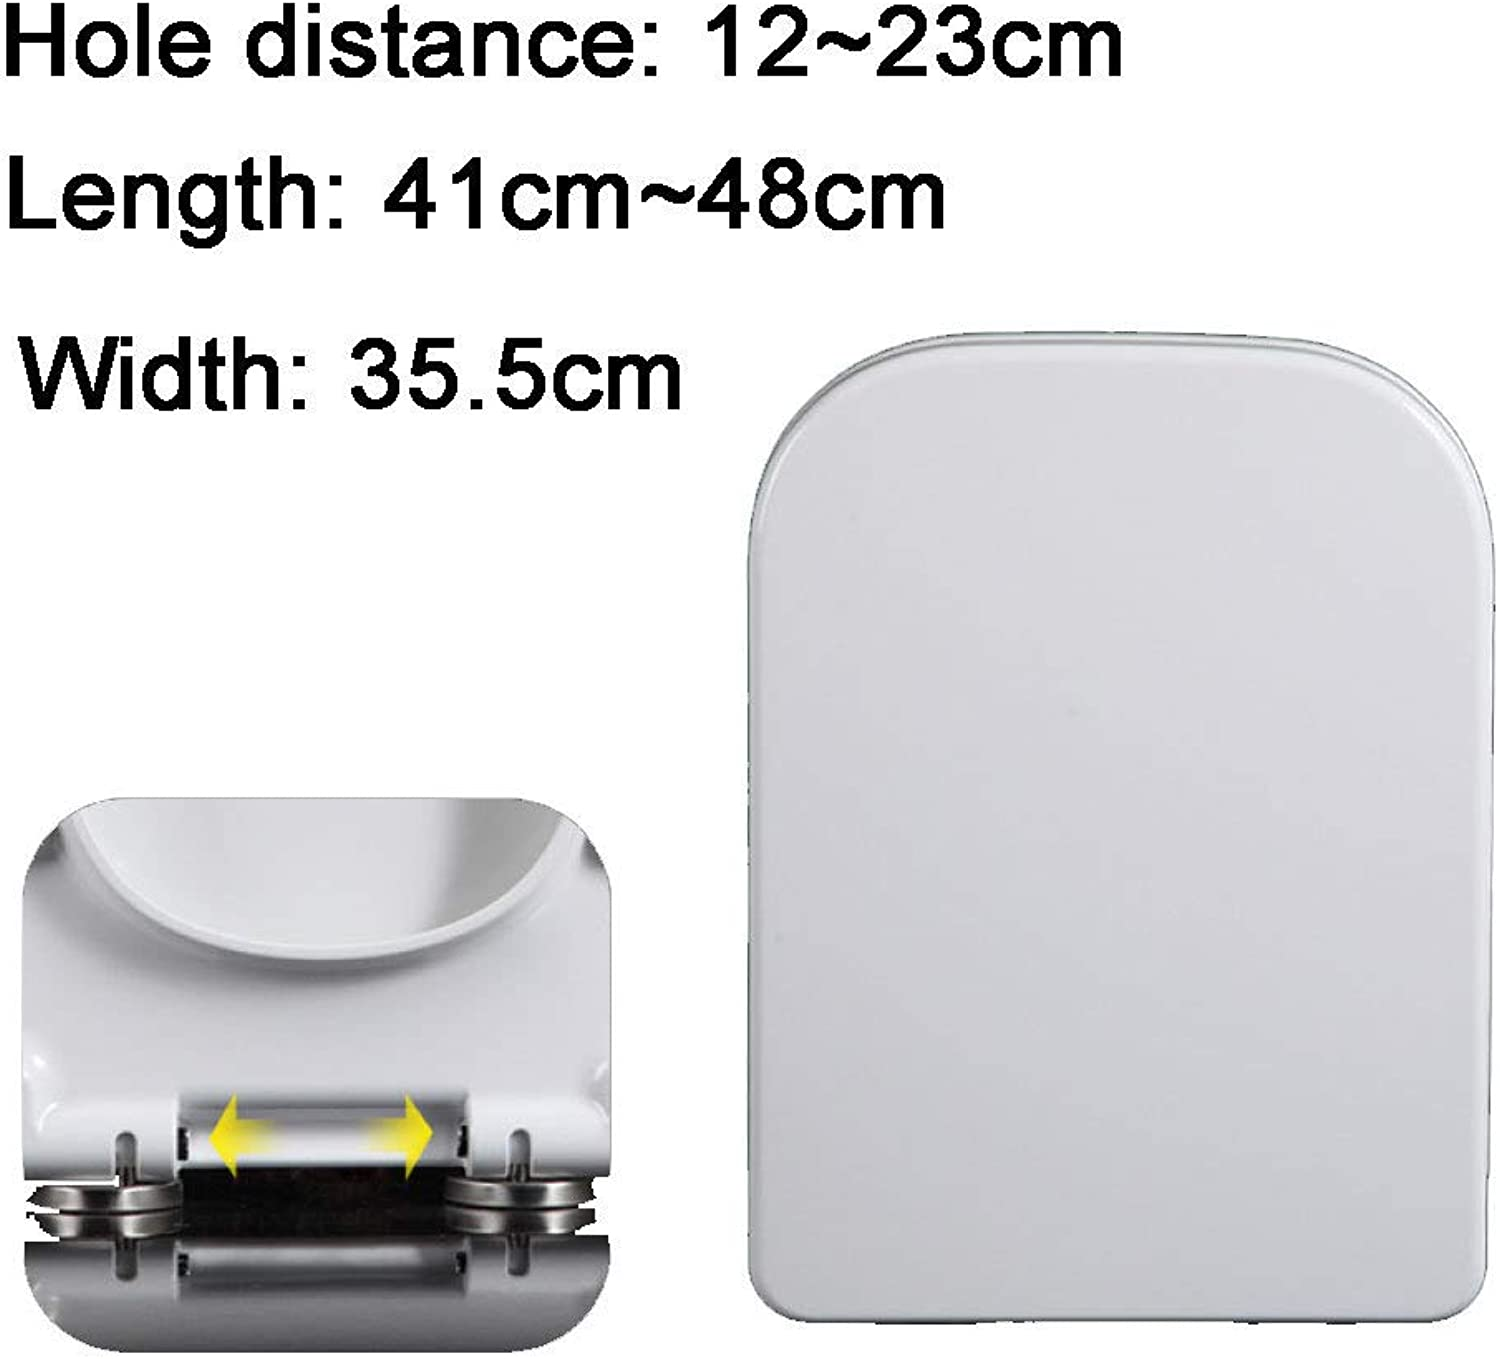 S-graceful Toilet Lid With Slow Down Mute Toilet Seat Cover Thickened Top Mounted Bathroom Lid For Trapezoid Toilet Seat,A